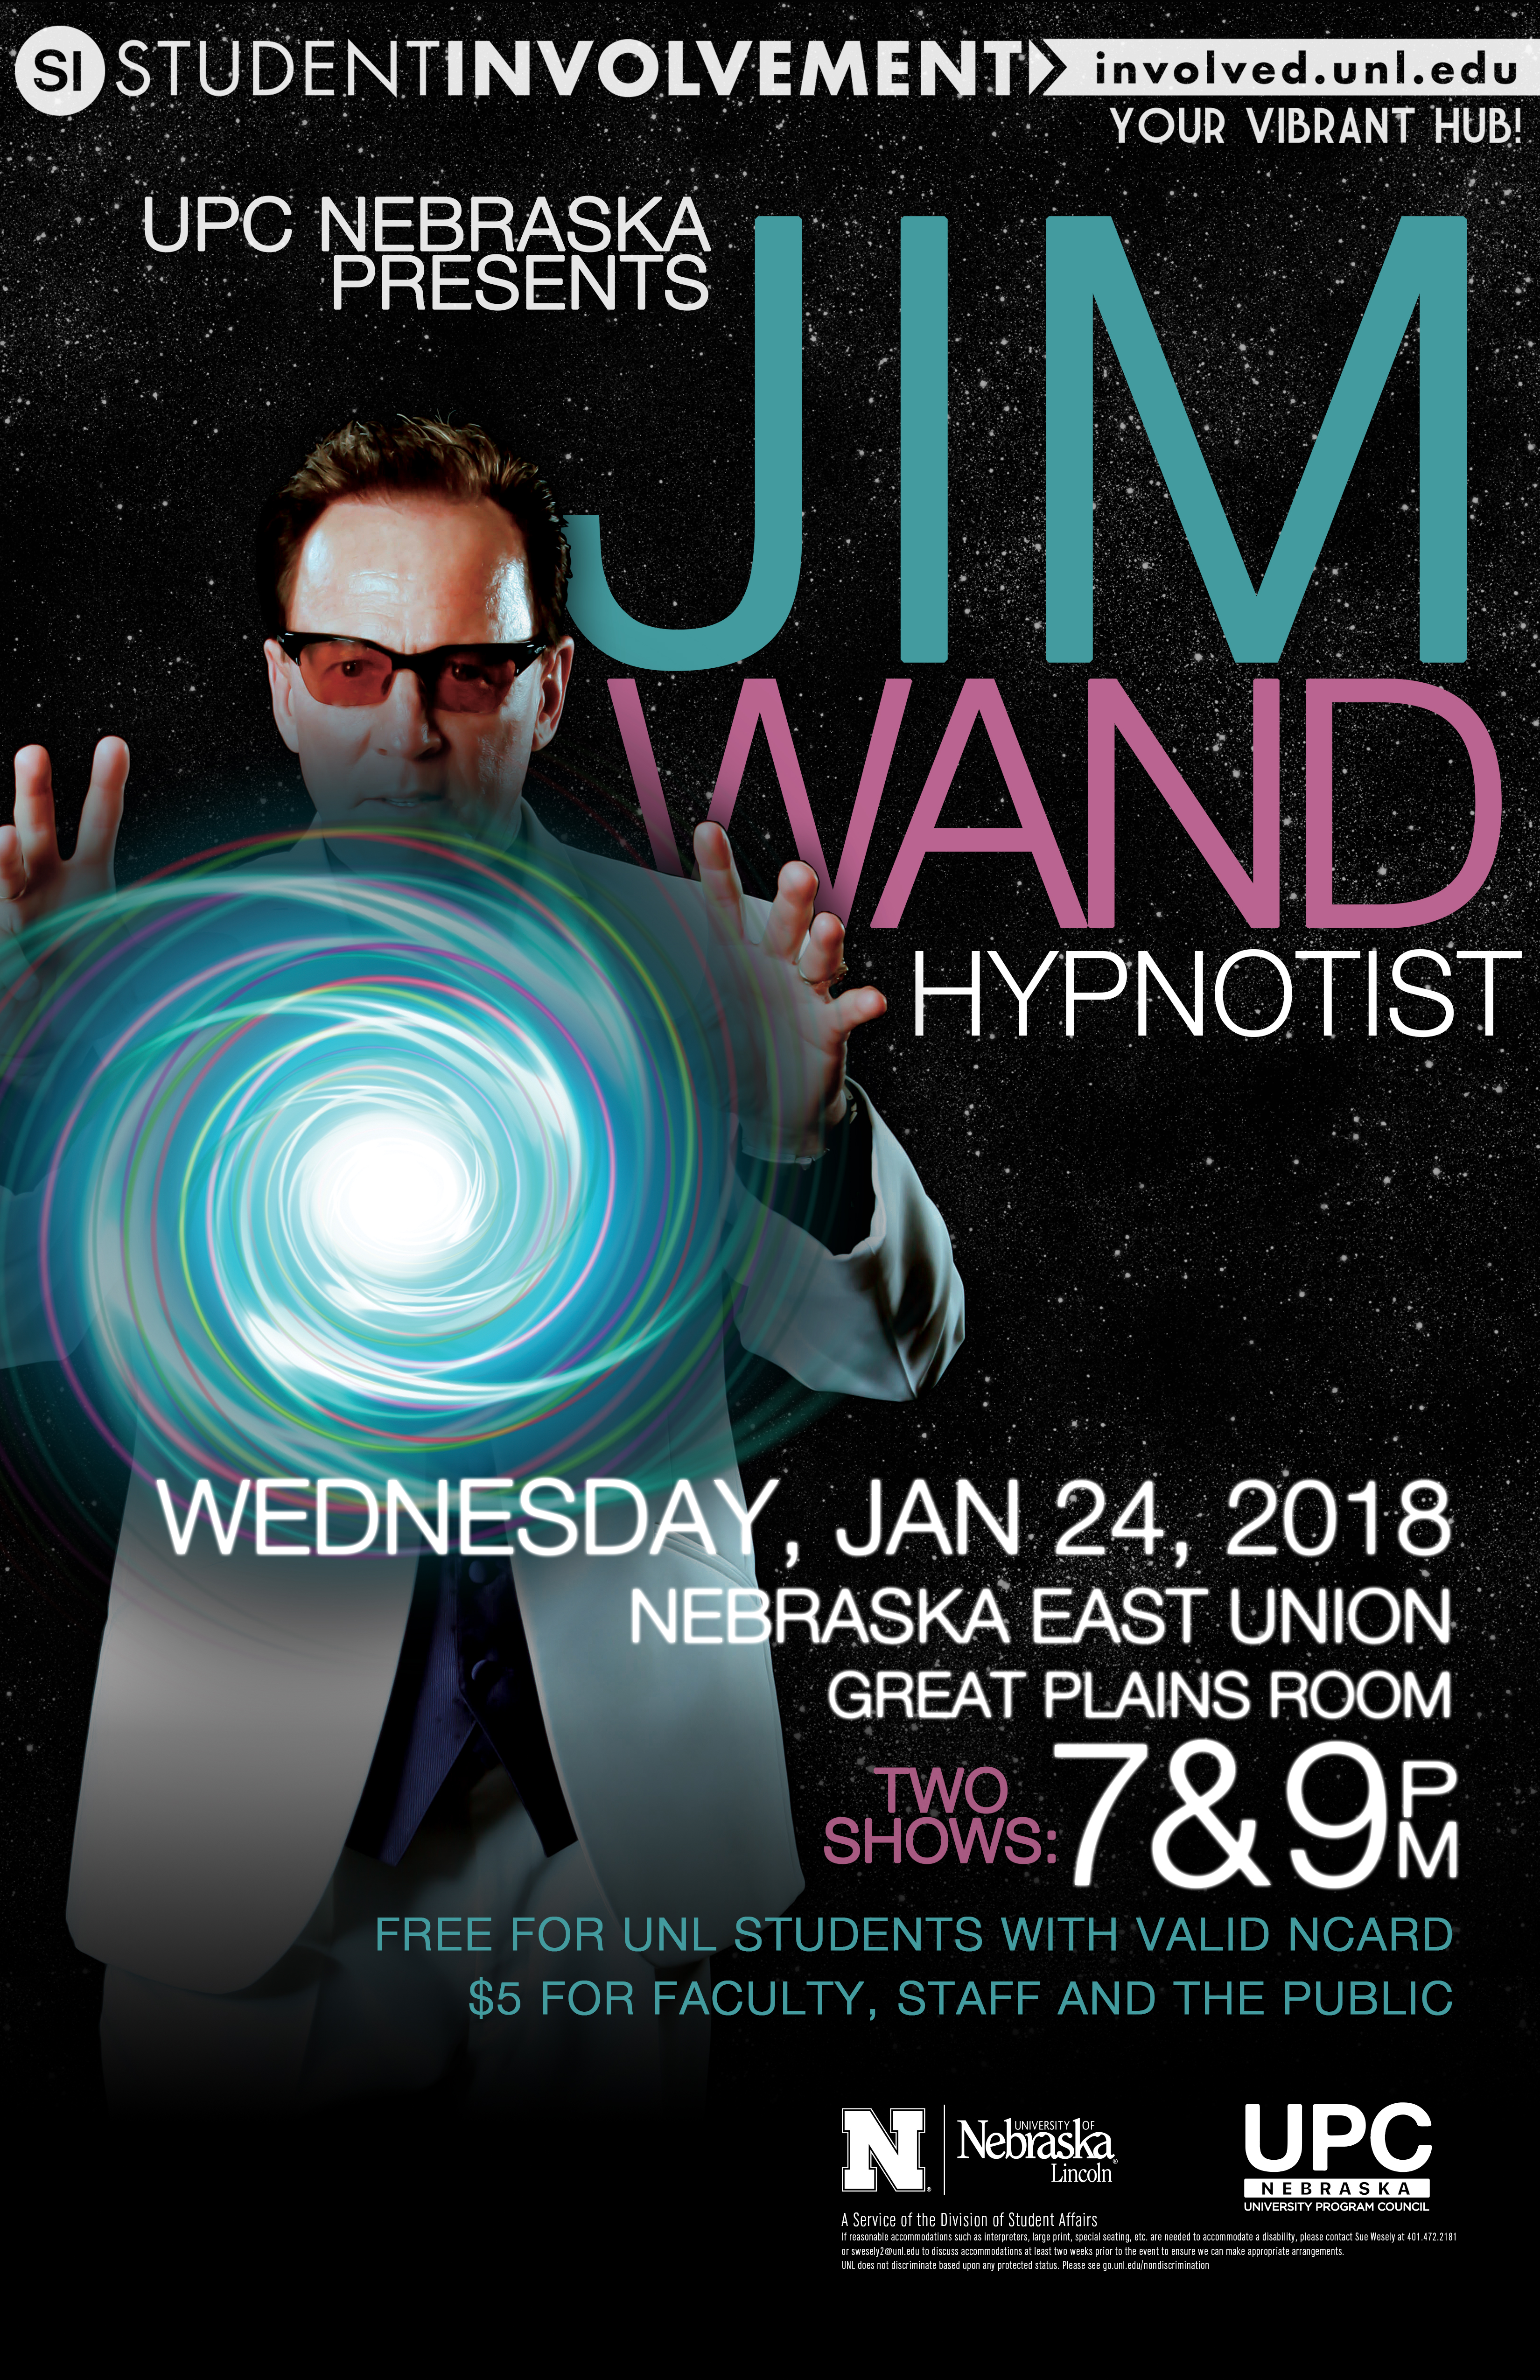 Dr. Jim Wand is coming to campus! Don't miss out!